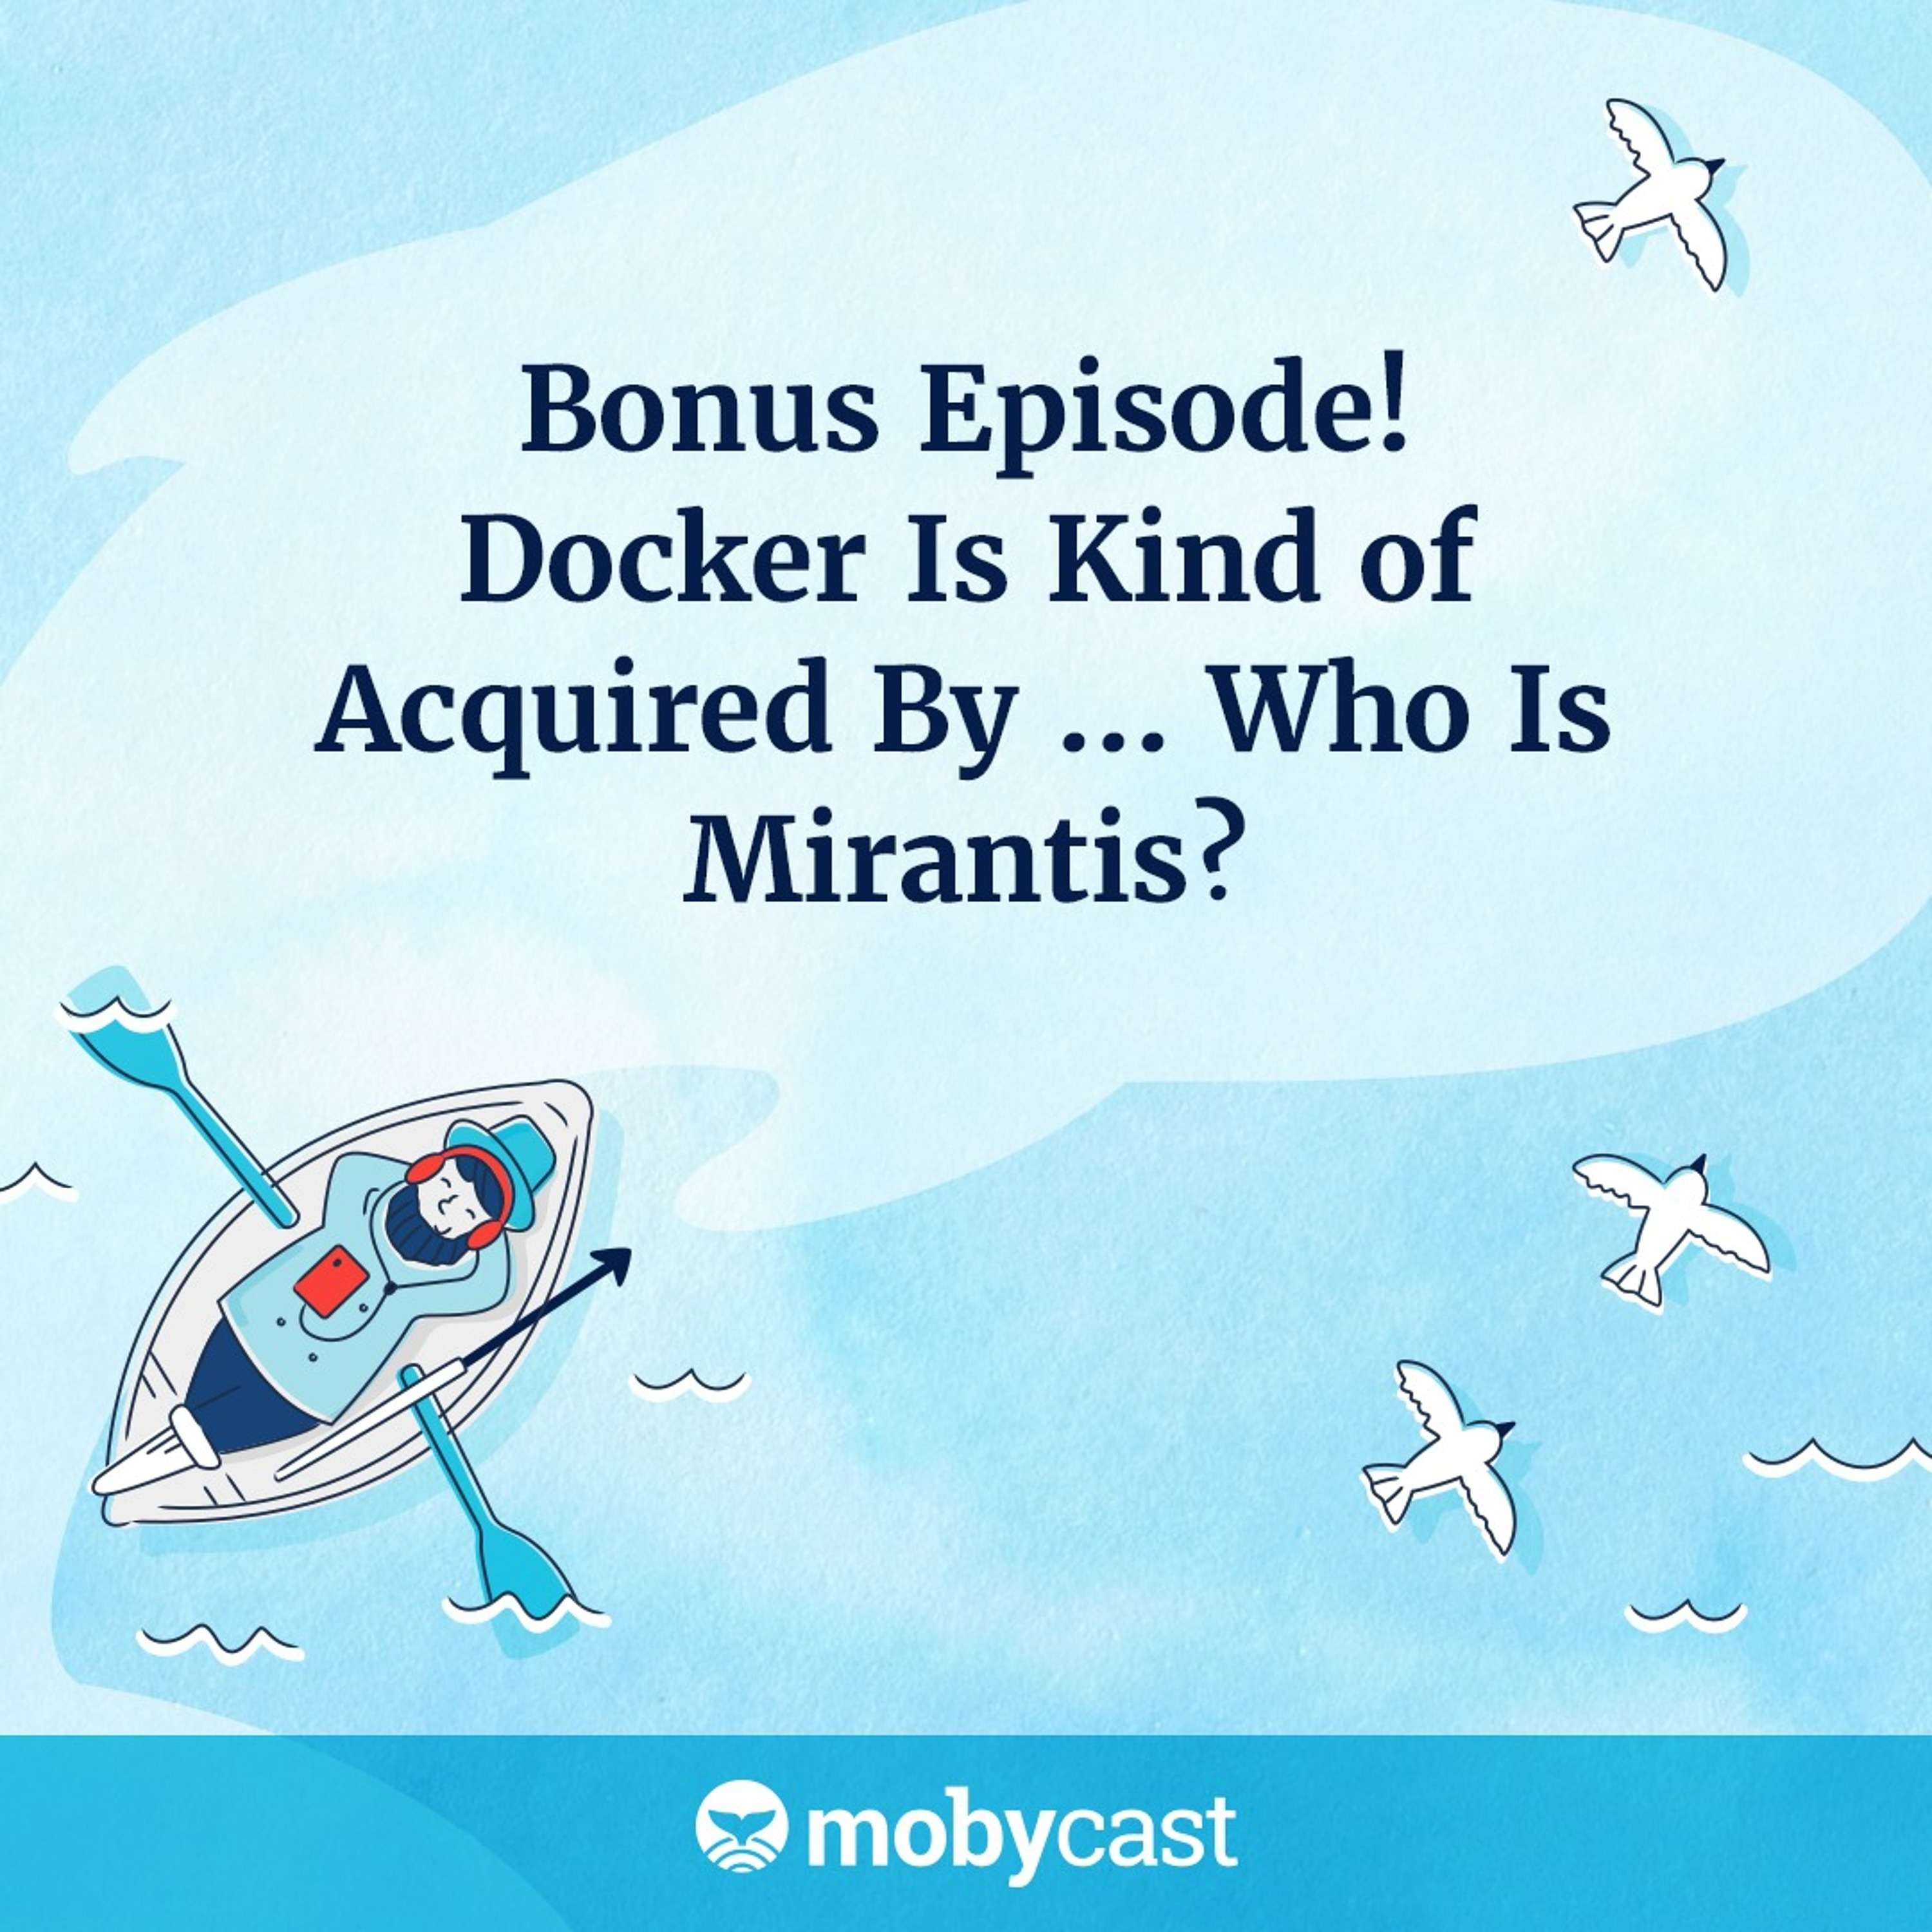 Bonus Episode! Docker Is Kind of Acquired By ... Who Is Mirantis?